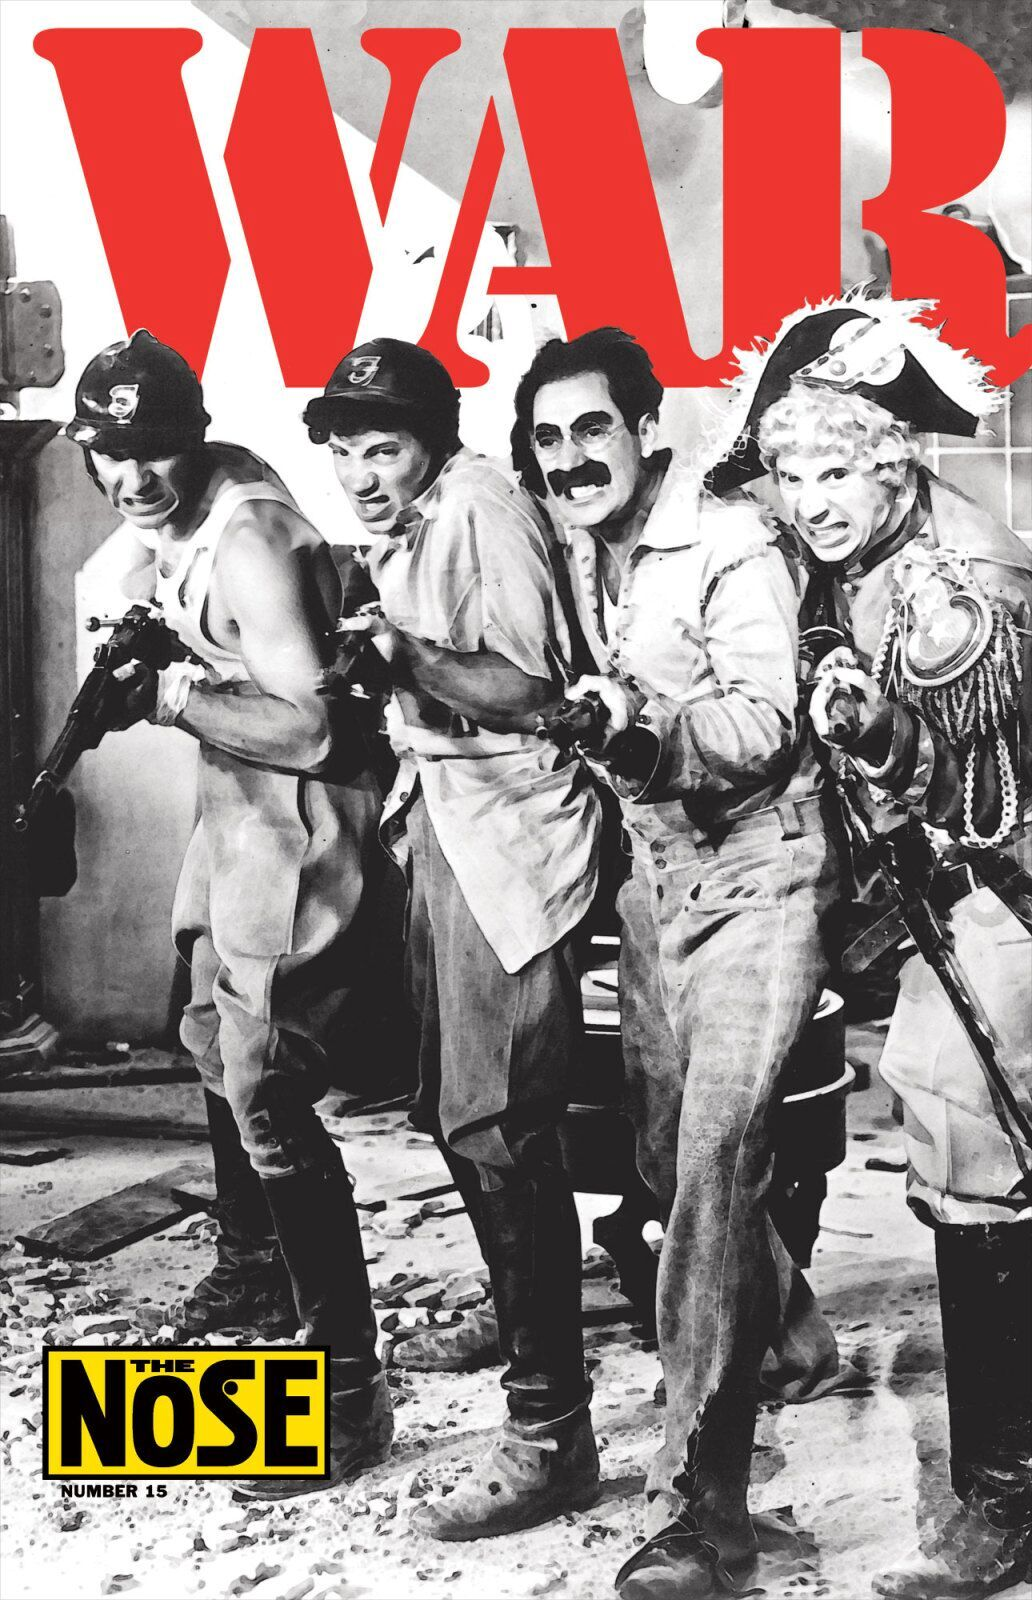 Chwast-poster-design-the-nose-war-marxbrothers